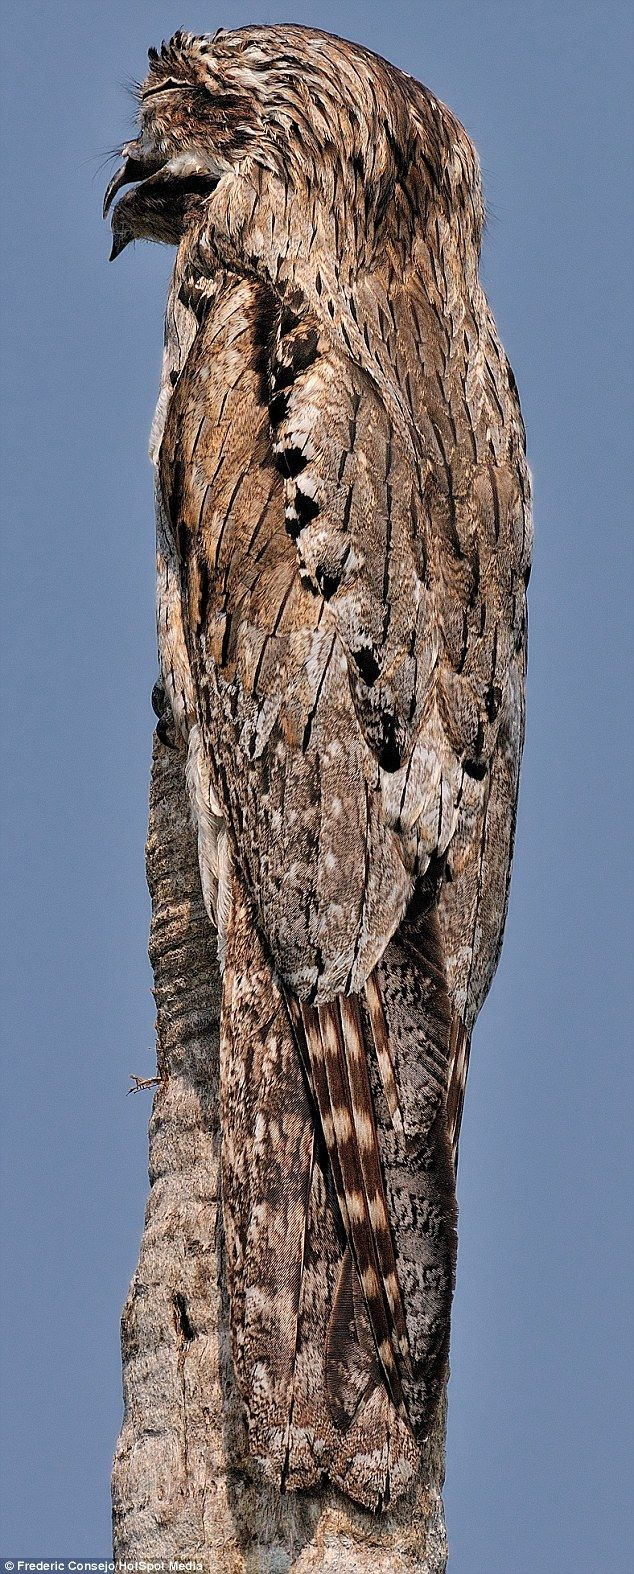 Northern potoos camouflage themselves on tree stumps during the day